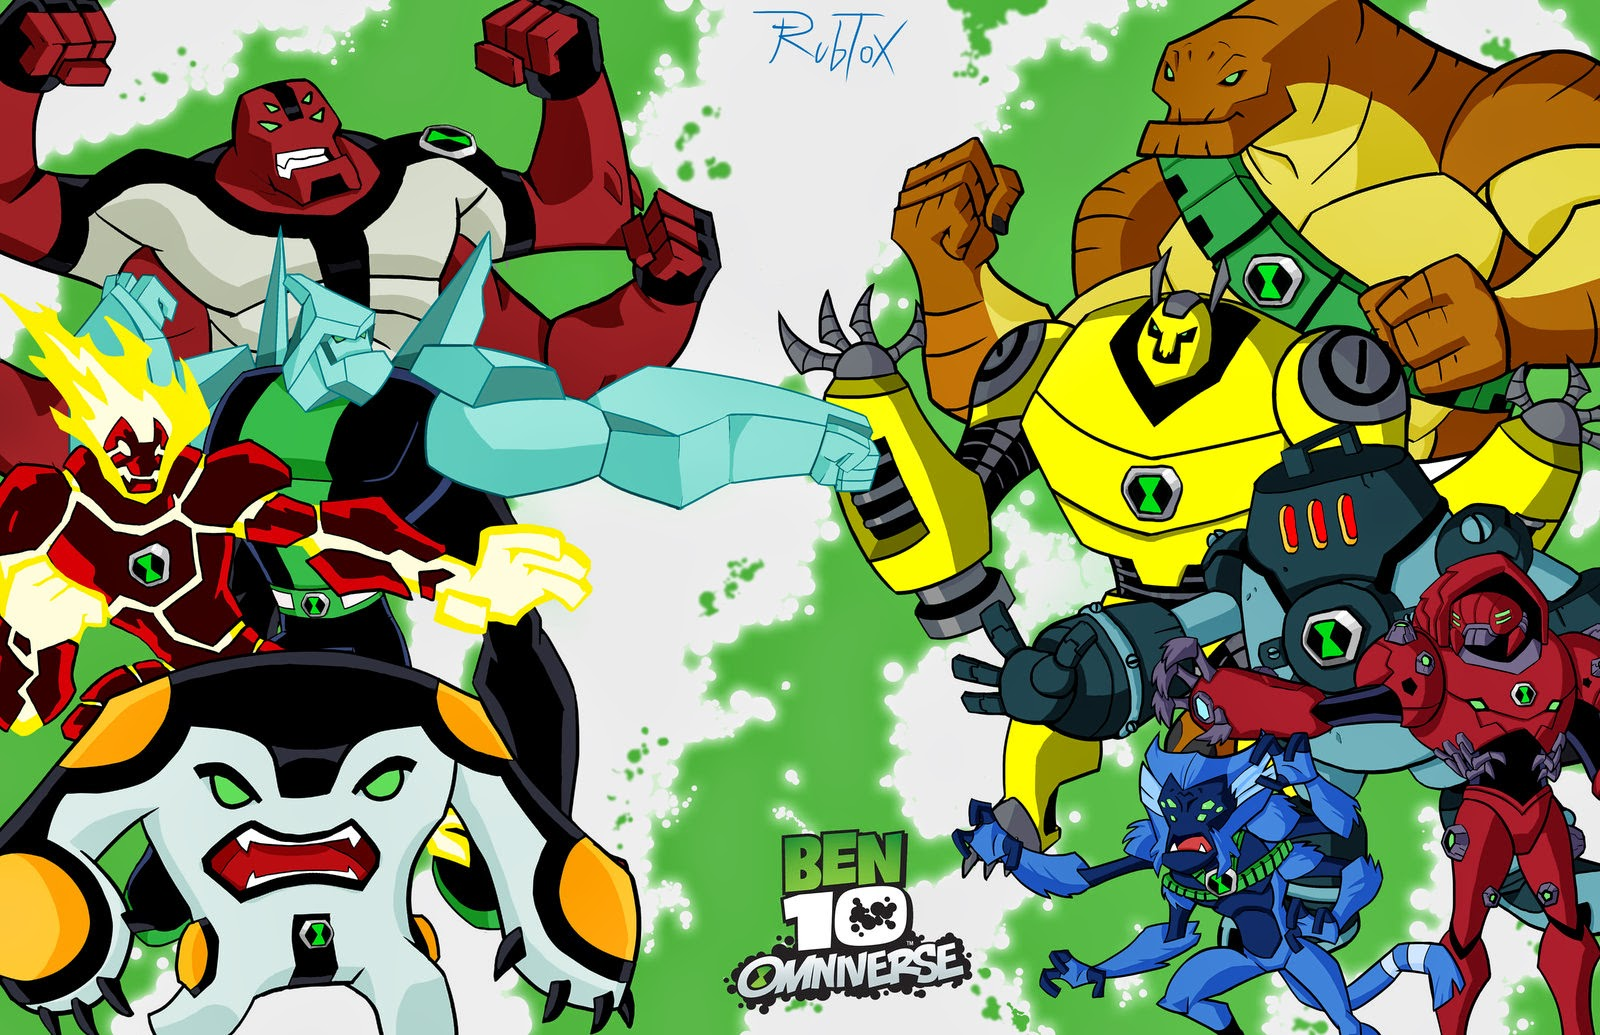 Wallpaper Ben 10 Cartoon Ben 10 Cartoon in Hindi Part 1